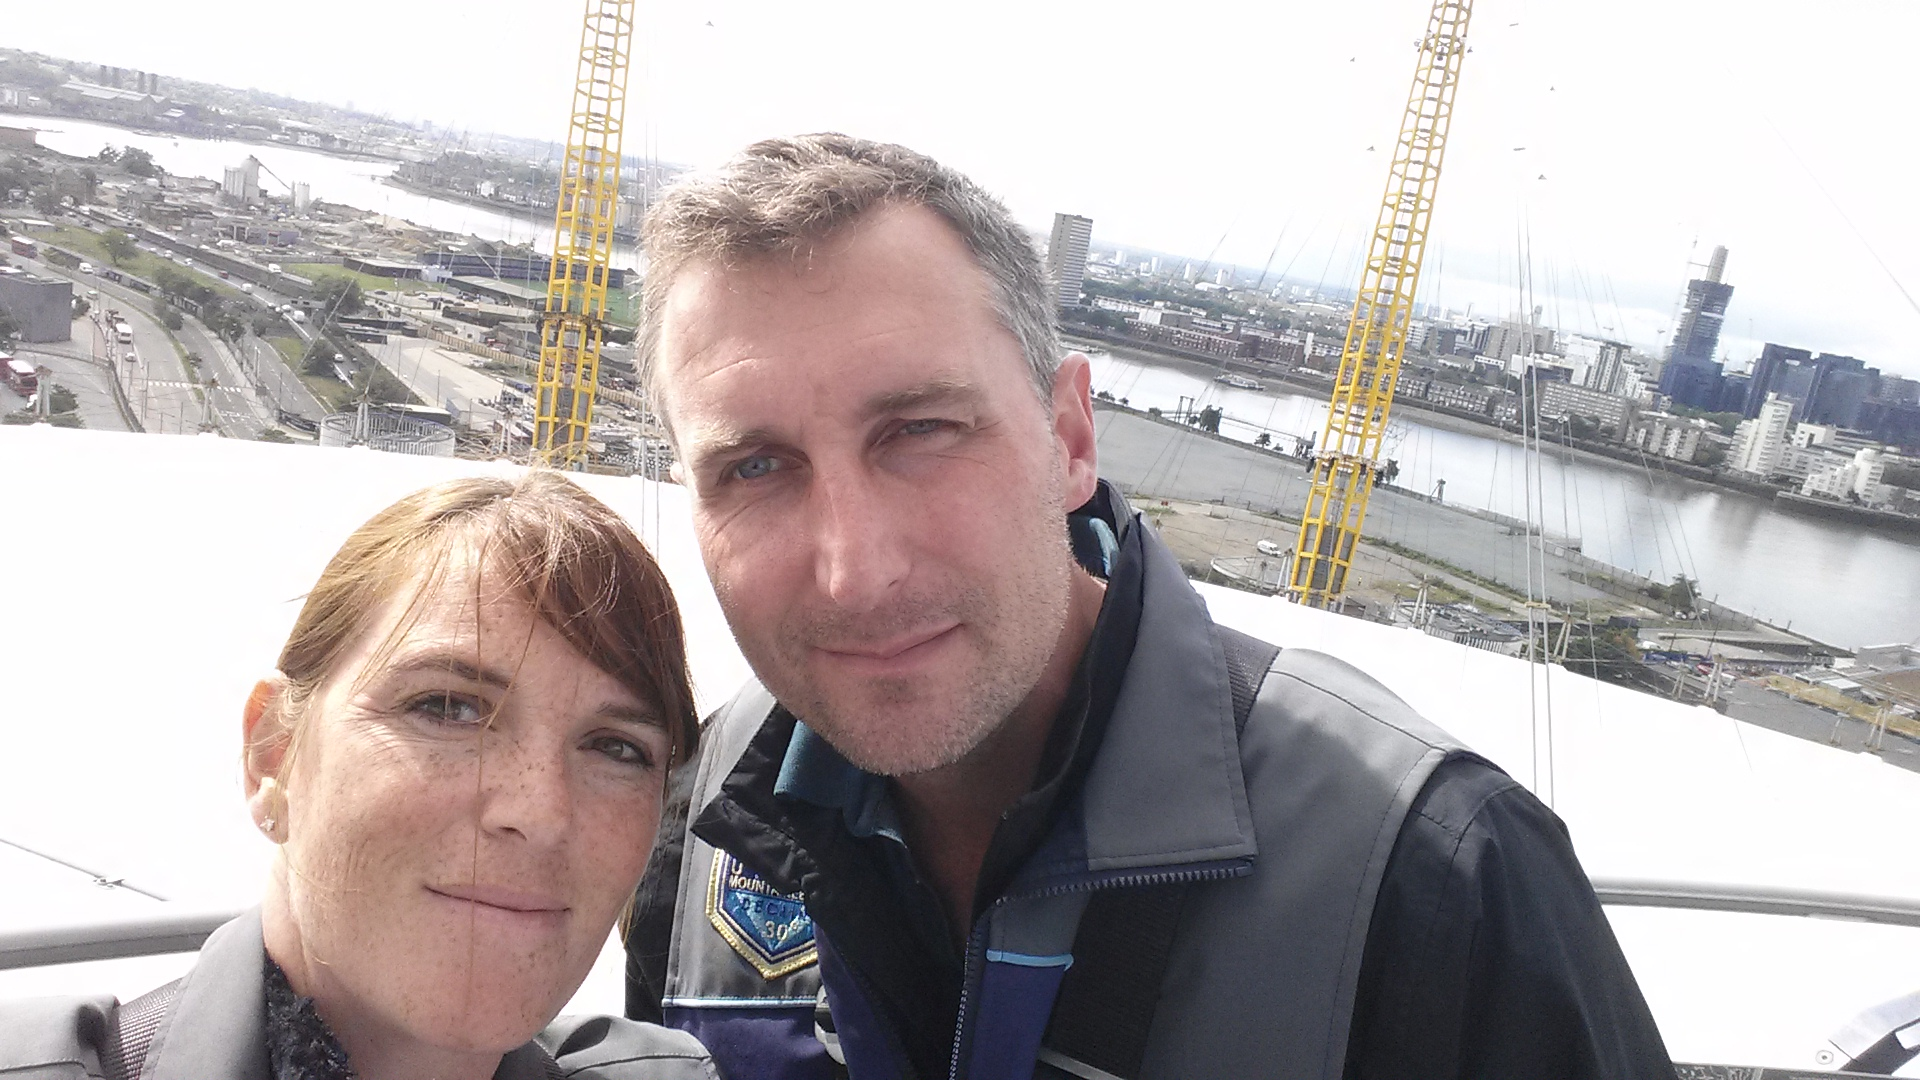 A fun day out climbing 'Up at The O2' & Wagamama for Lunch